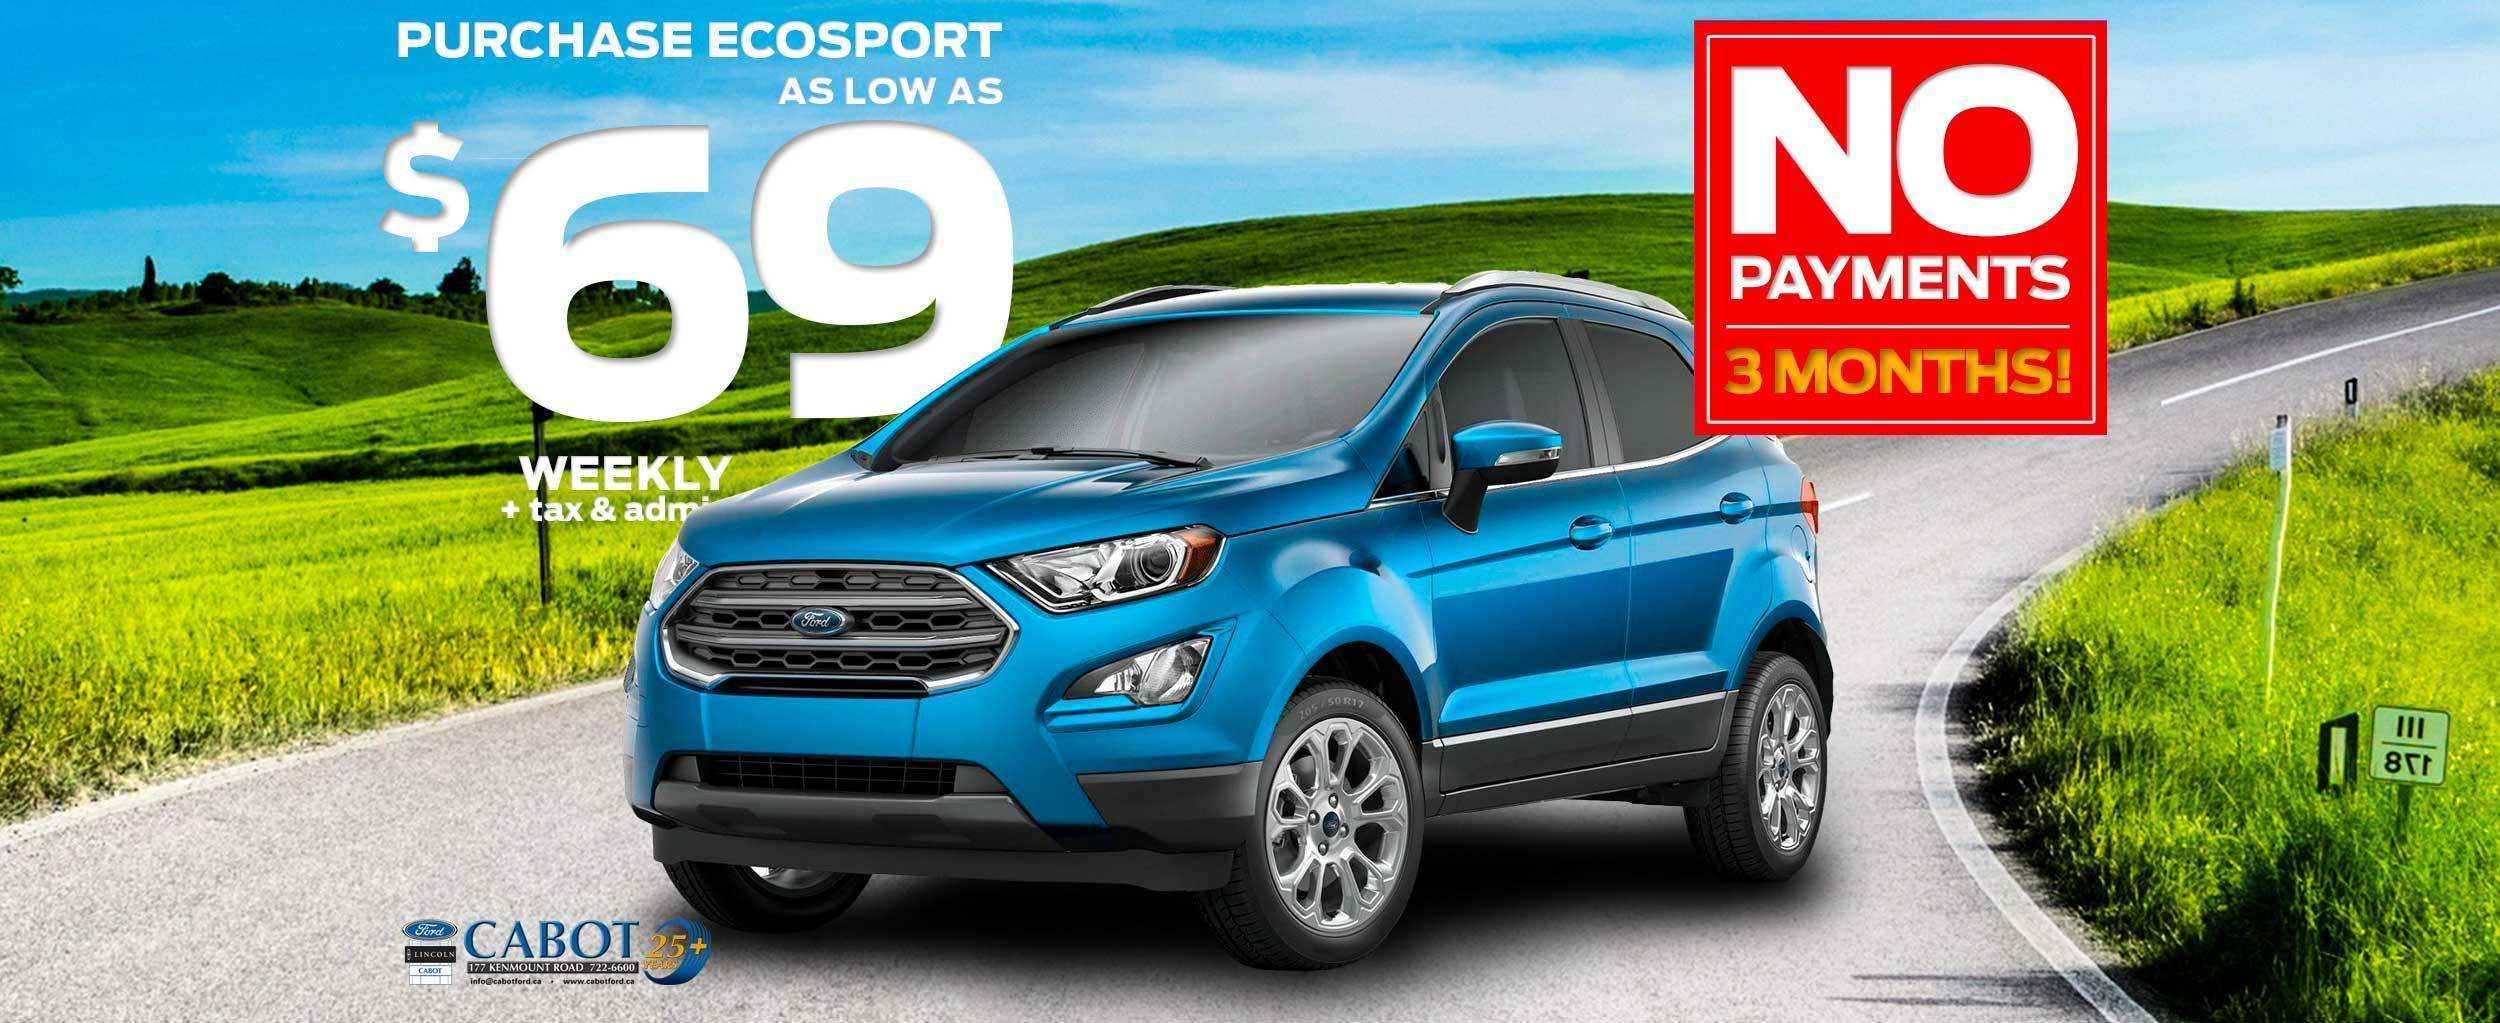 Get the FORD ECOSPORT 4WD for as low as $69 weekly, plus tax & admin, with NO PAYMENTS FOR THREE MONTHS! Limited time only.